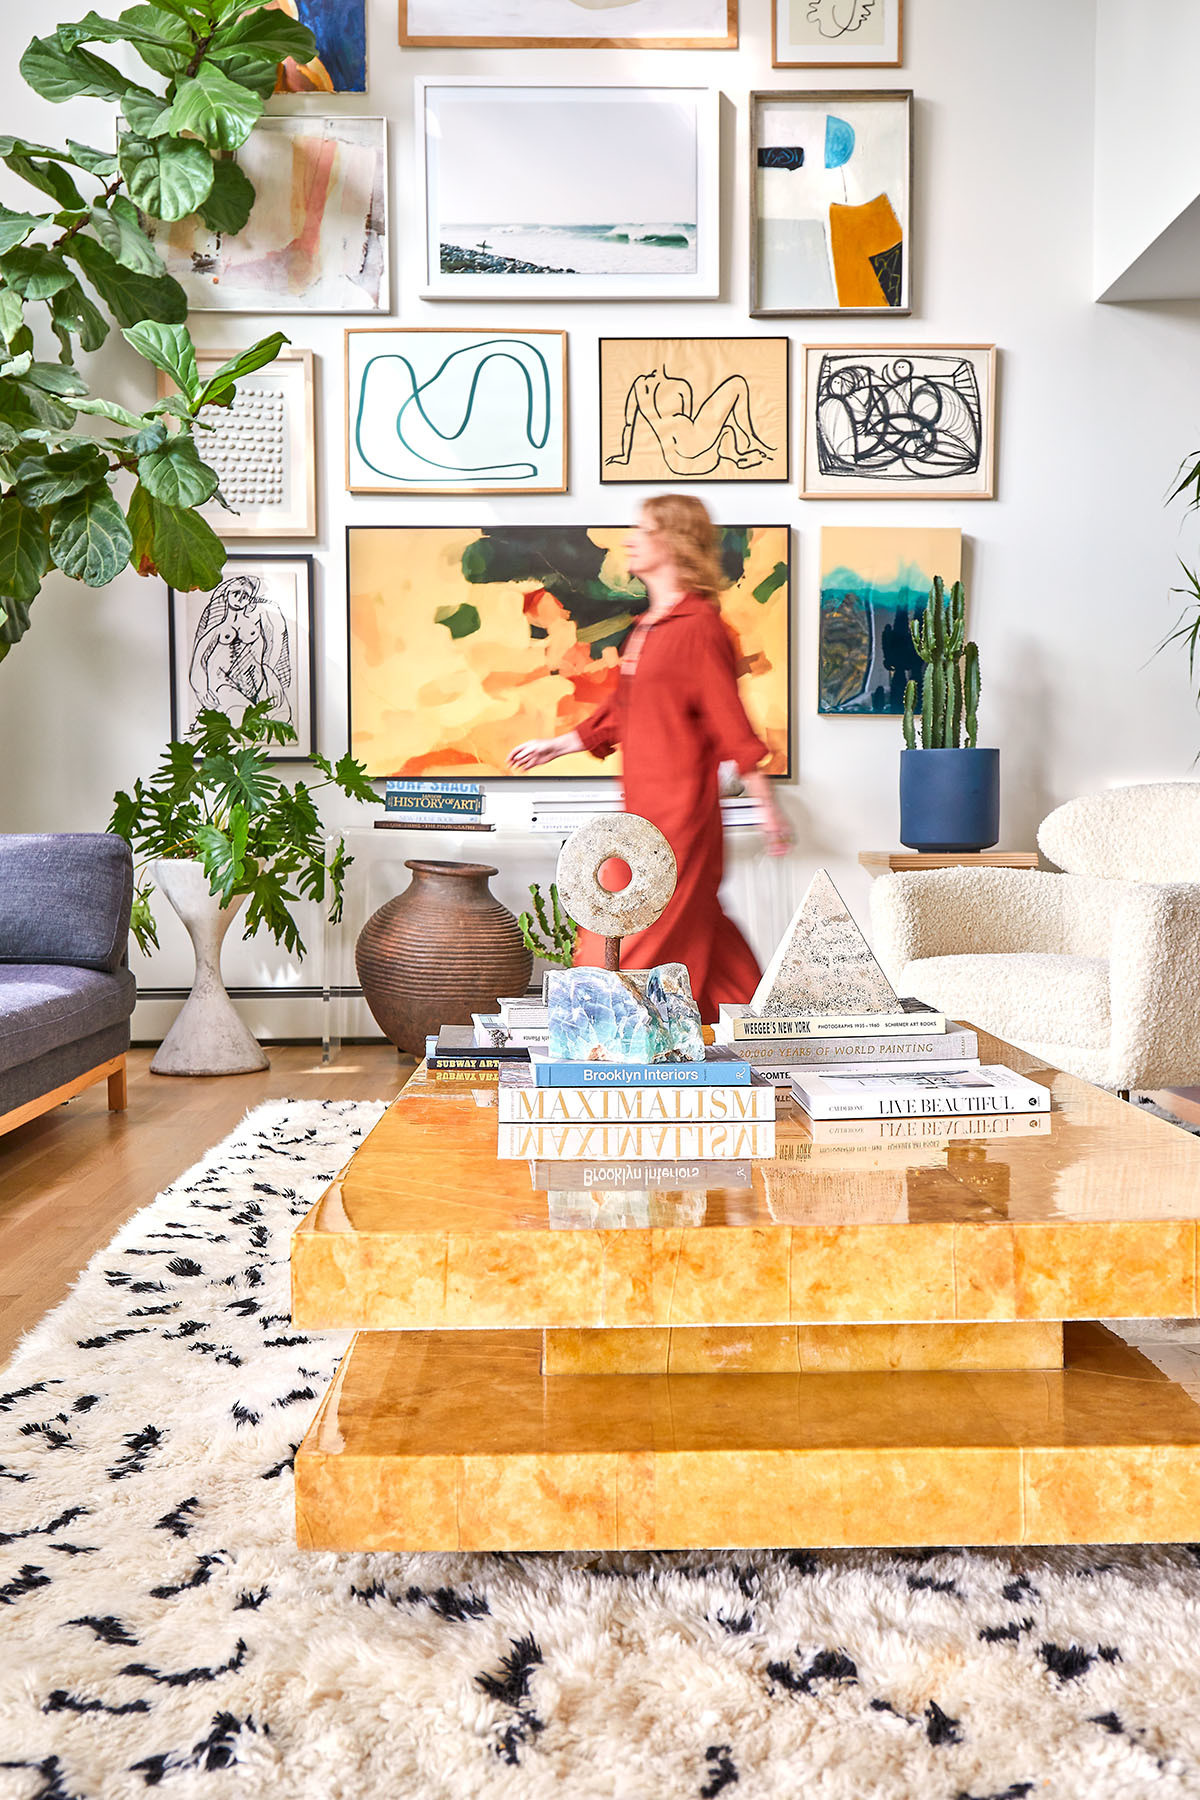 An eclectic gallery wall serves as a mood board for Arasa's Pound Ridge home. Benjamin Moore Paint | Interior Define Sofa | Chairish Vintage Coffee Table | World Market, Patina Studios Assorted Pillows | Aelfie Area Rug | CB2, World Market, Willy Guhl Assorted Planters.